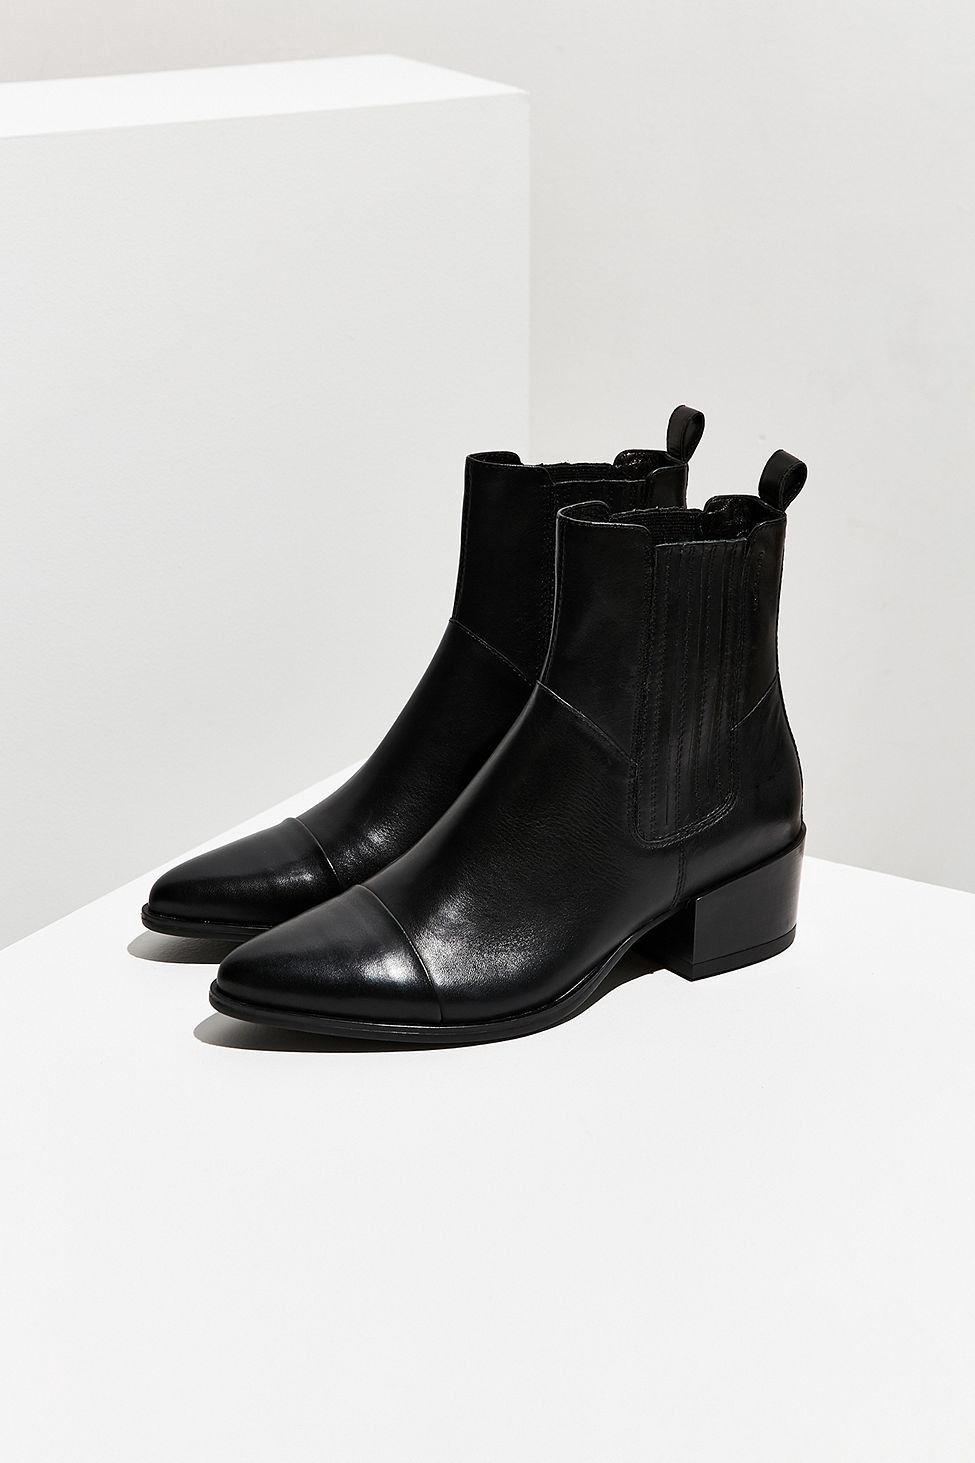 a886b7340471 Vagabond Shoemakers Marja Chelsea Boot by Urban Outfitters in 2019 ...